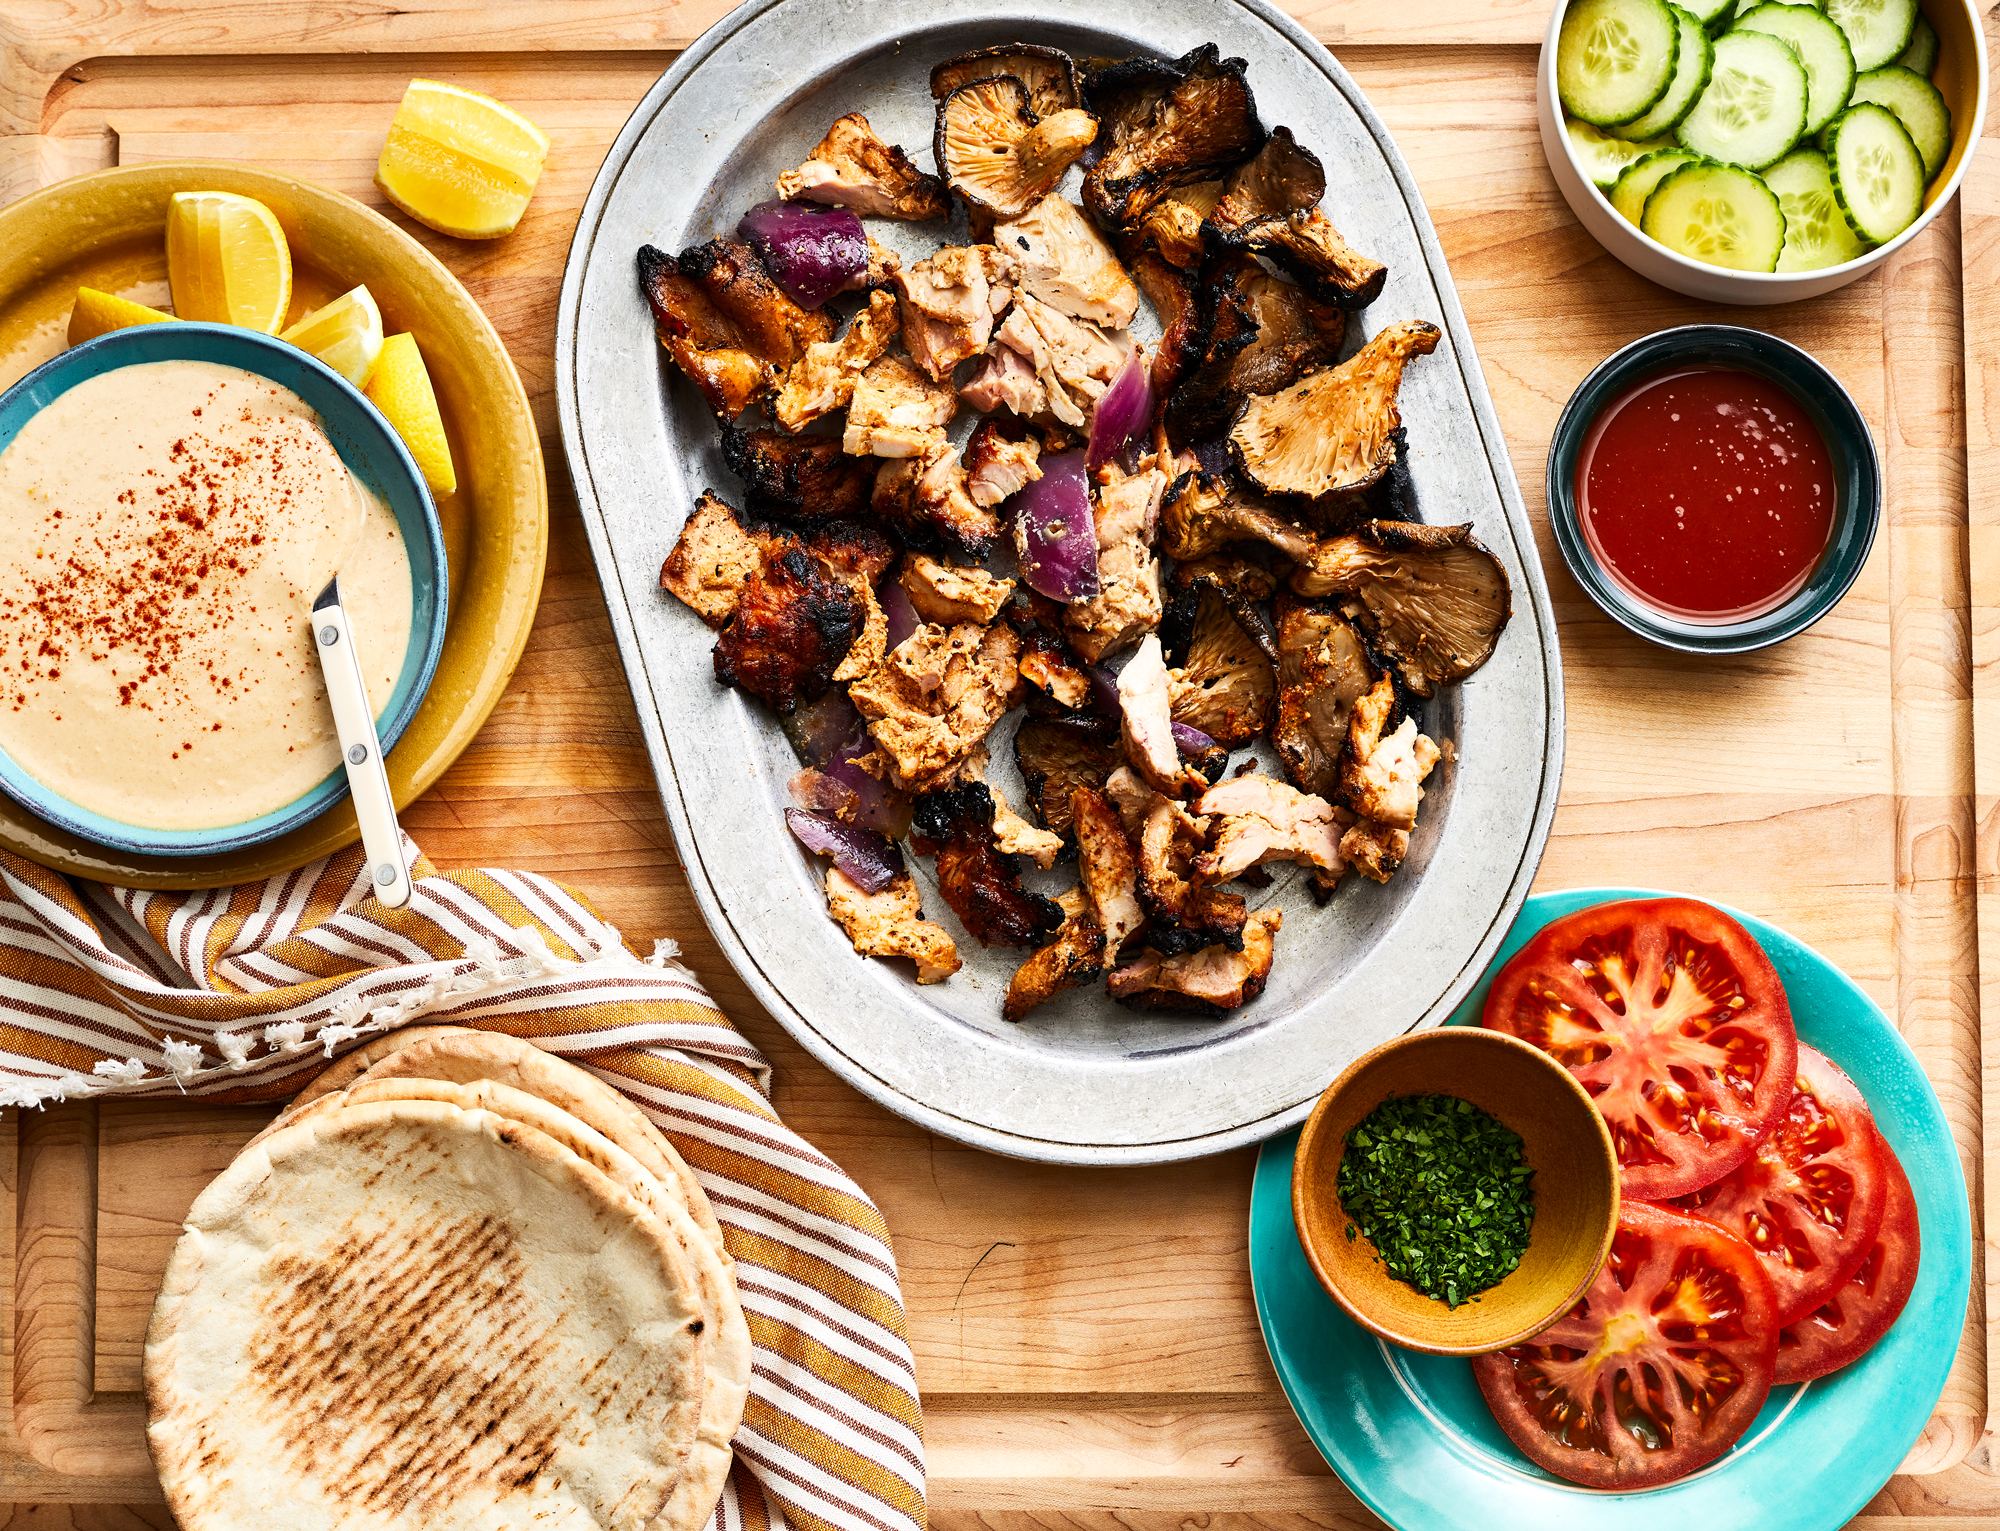 Shawarma Style Chicken and Mushroom Kebabs Recipe